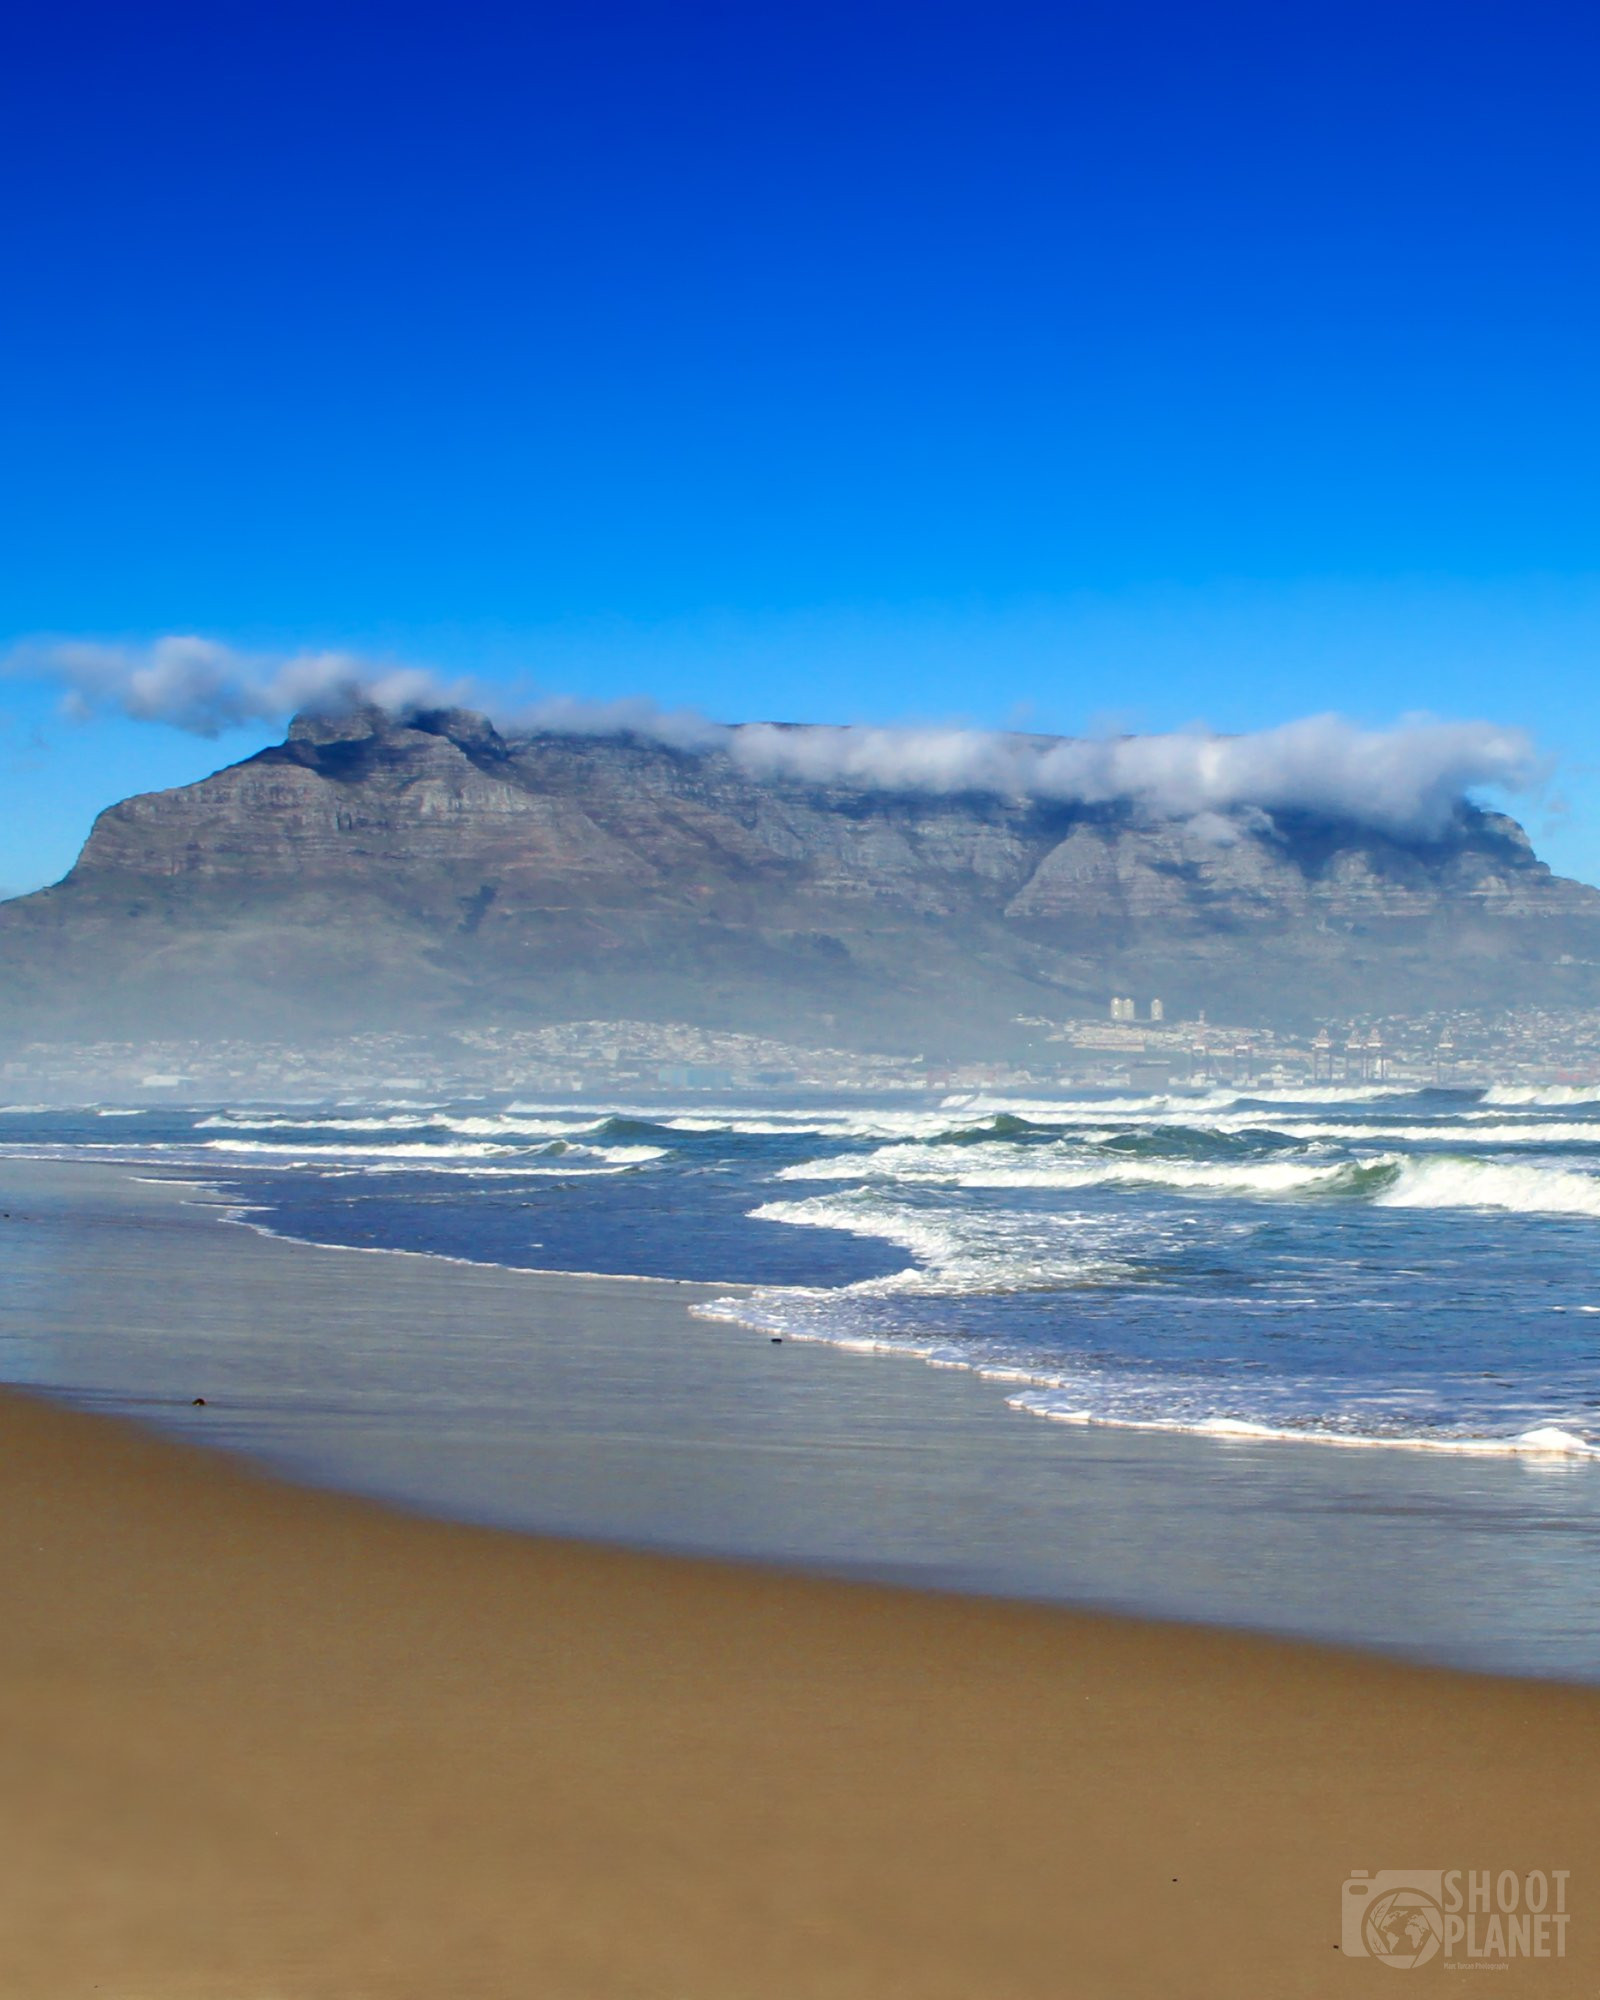 Table Mountain from Dolphin Beach, Cape Town